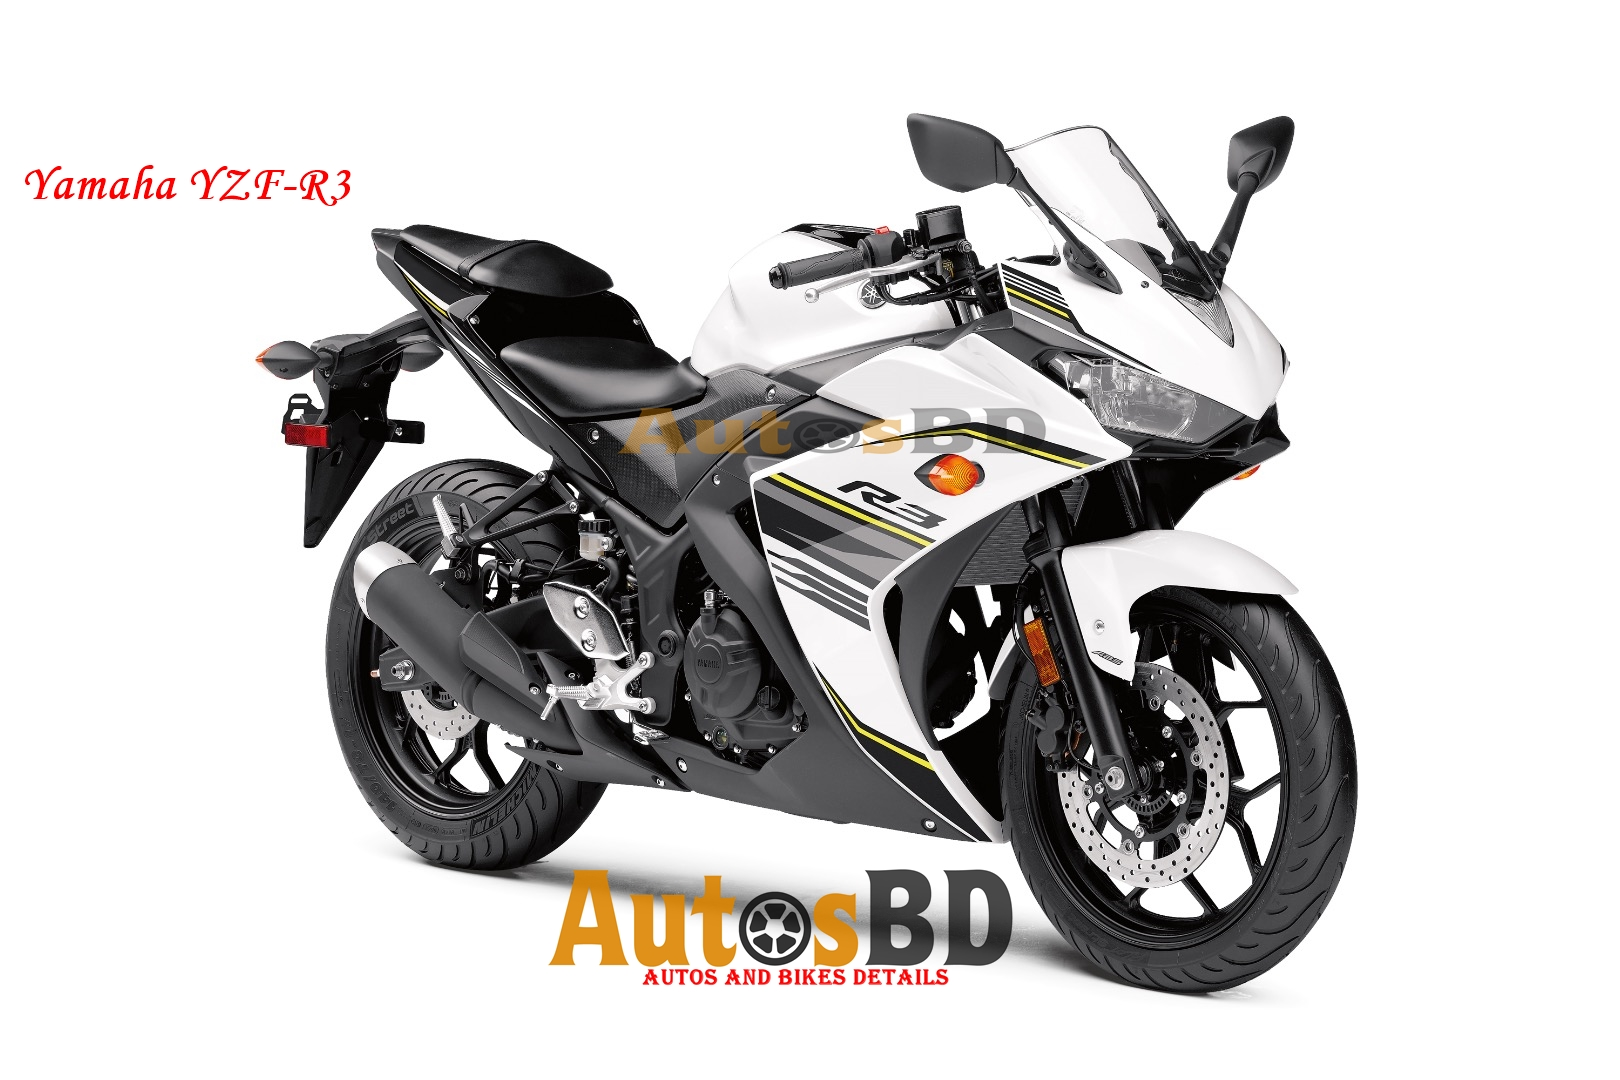 Yamaha YZF-R3 Price in India